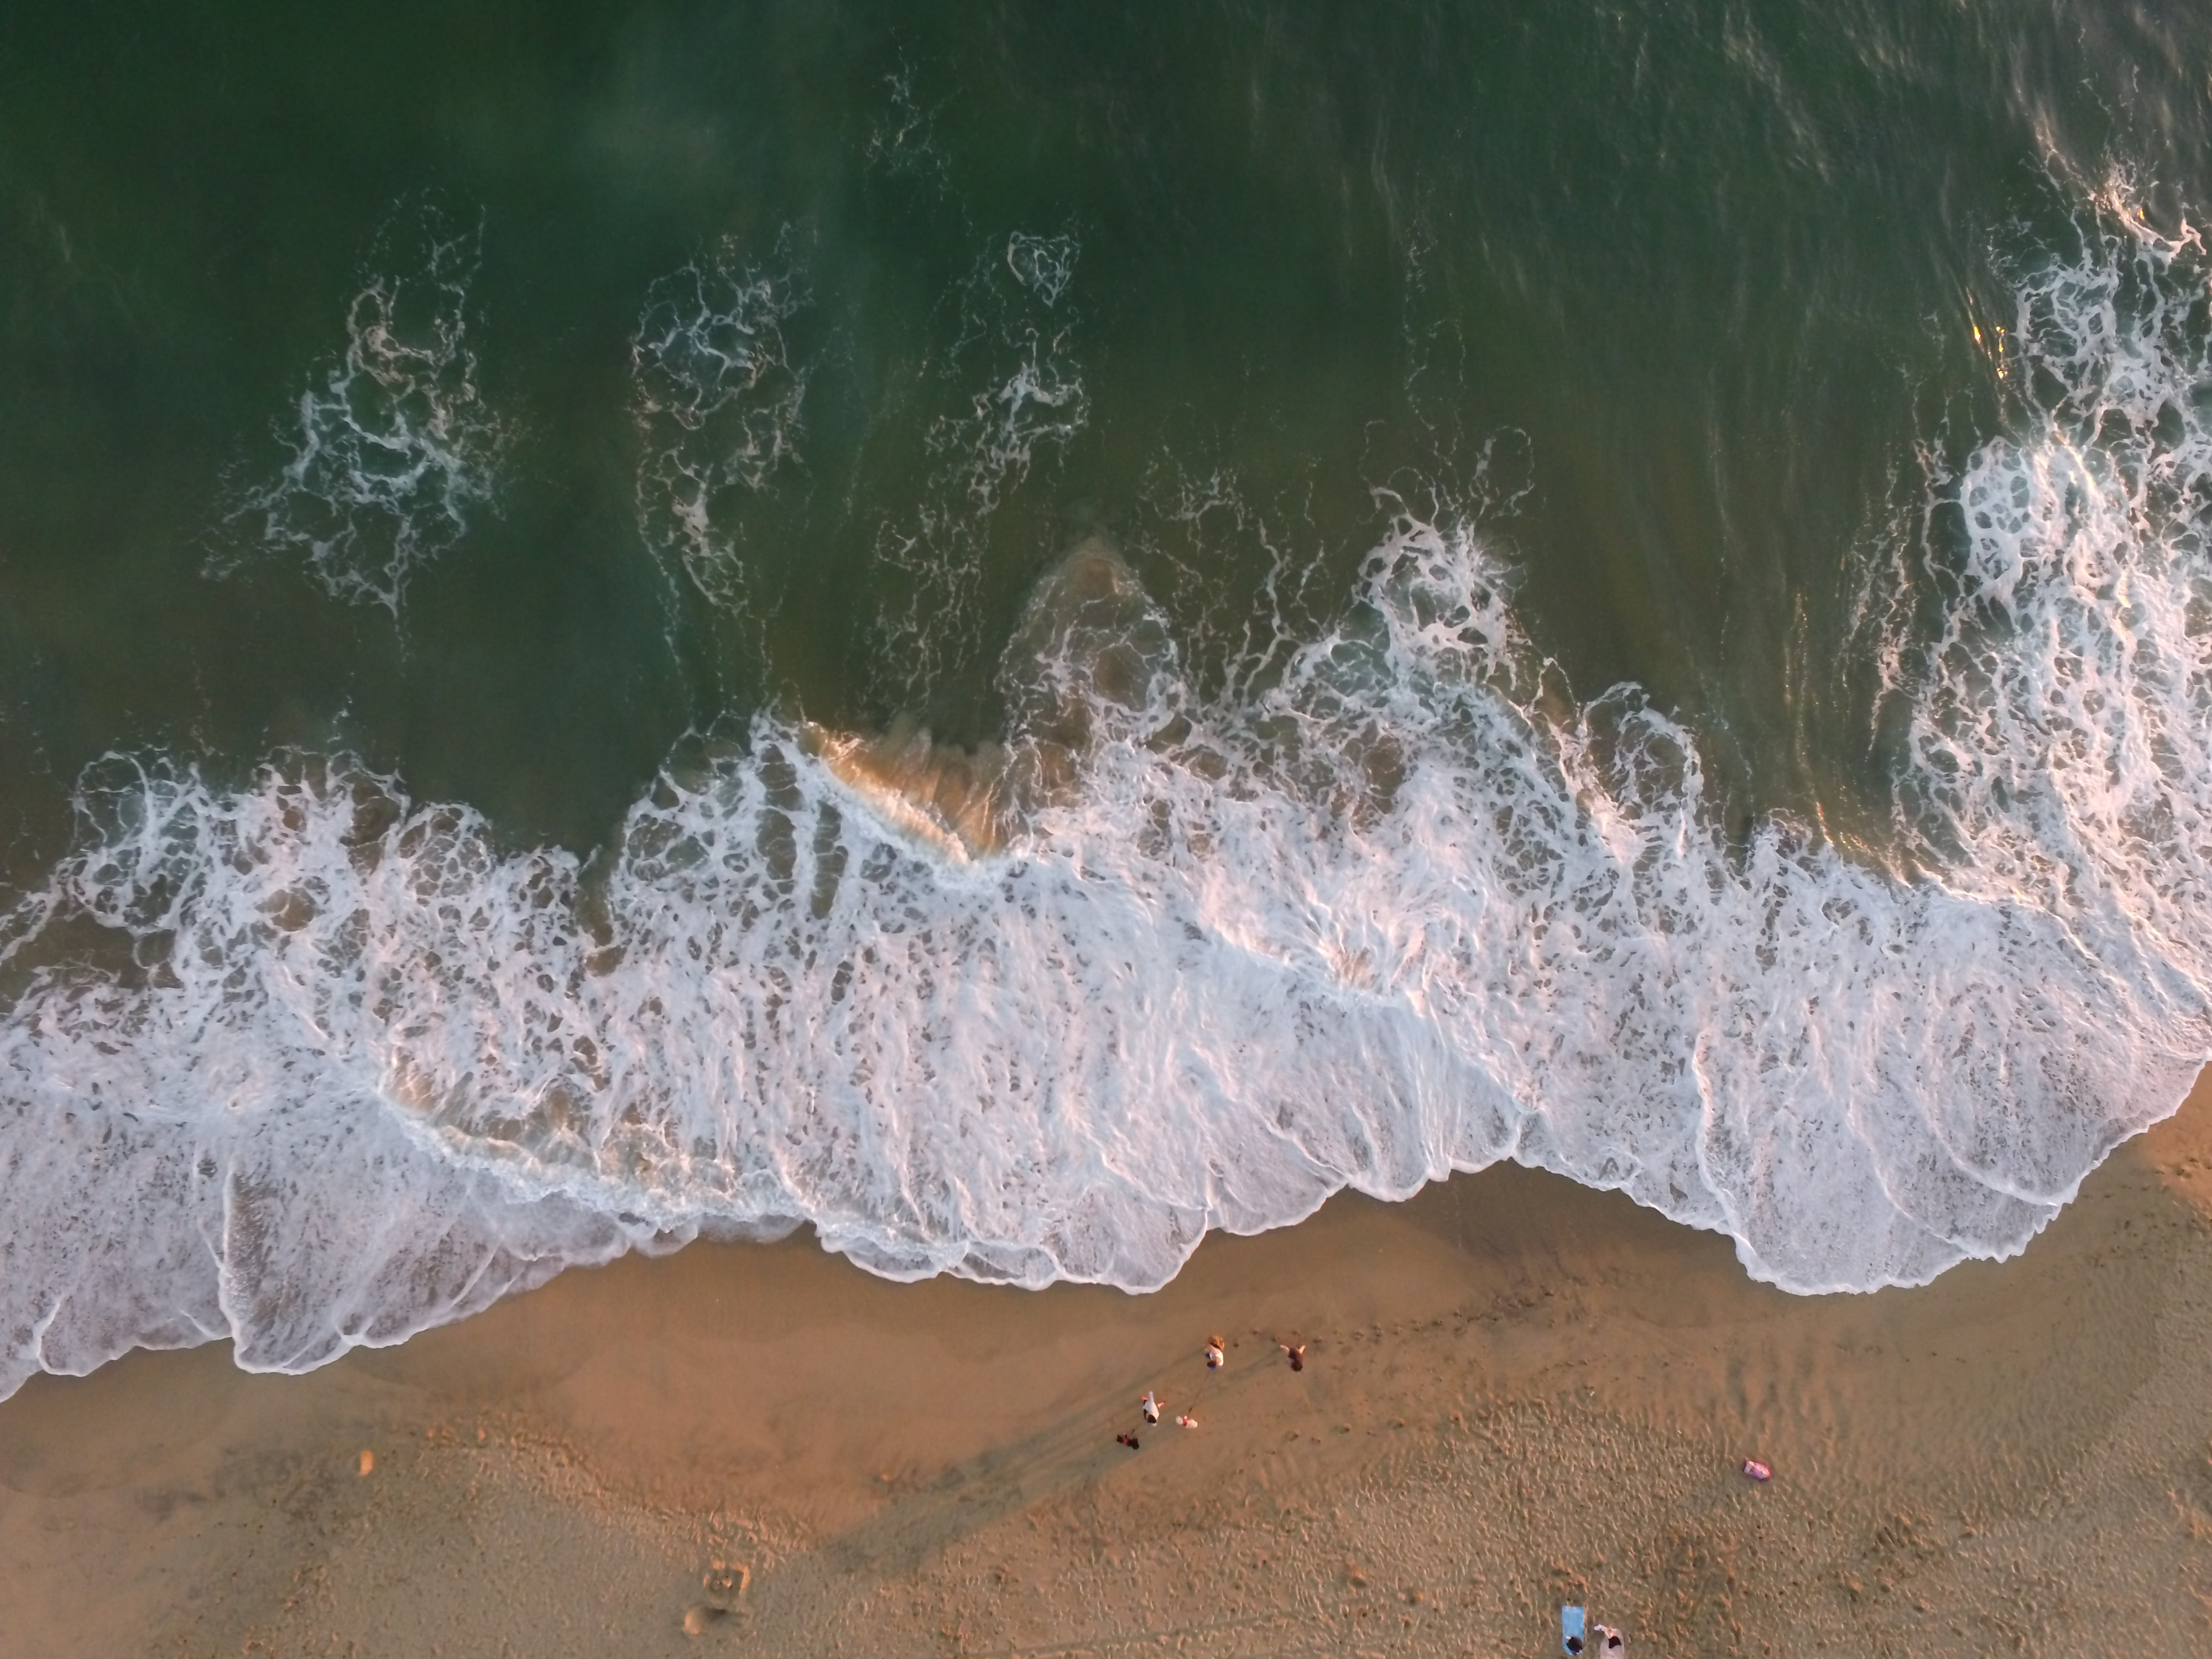 Drone aerial view of the ocean waves washing on the sand beach in Huntington Beach, California, United States